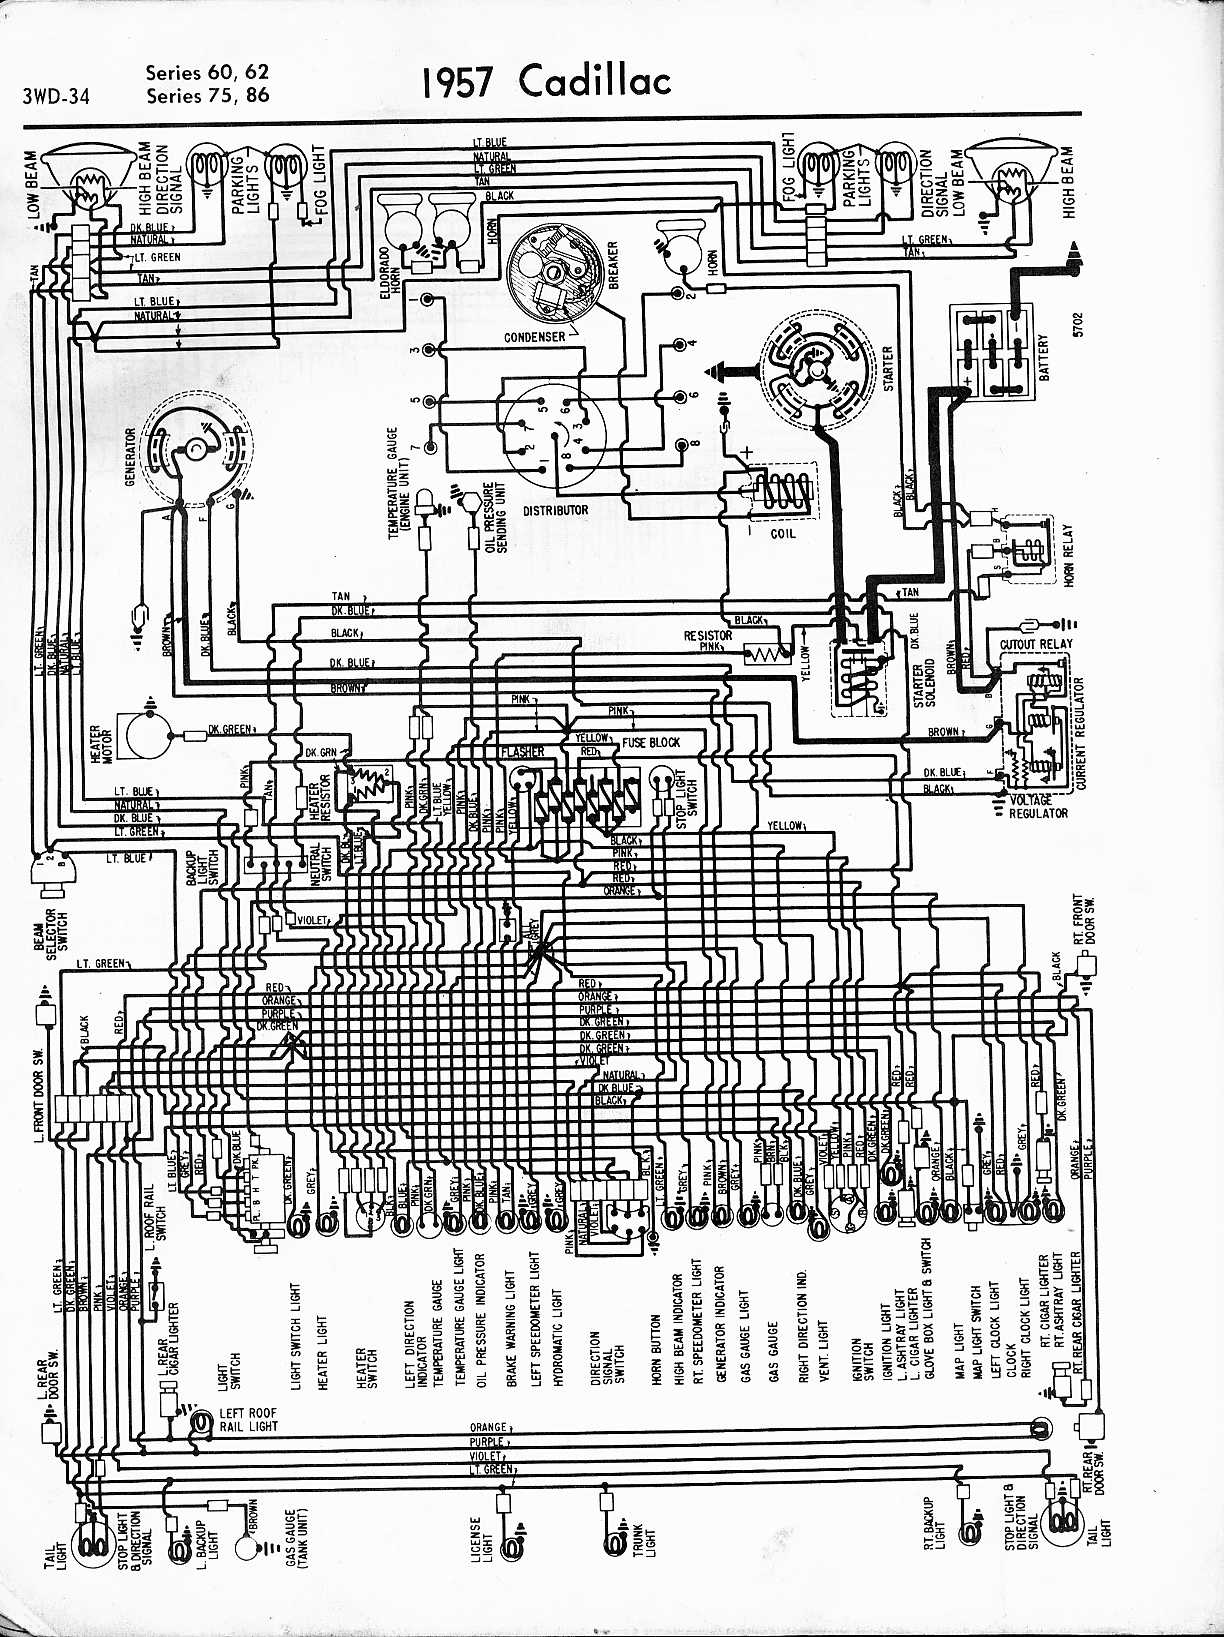 1956 cadillac wiring diagram schematic diagram www rgr online decadillac wiring diagrams 1957 1965 1956 chevy pickup wiring diagram 1957 series 60, 62,